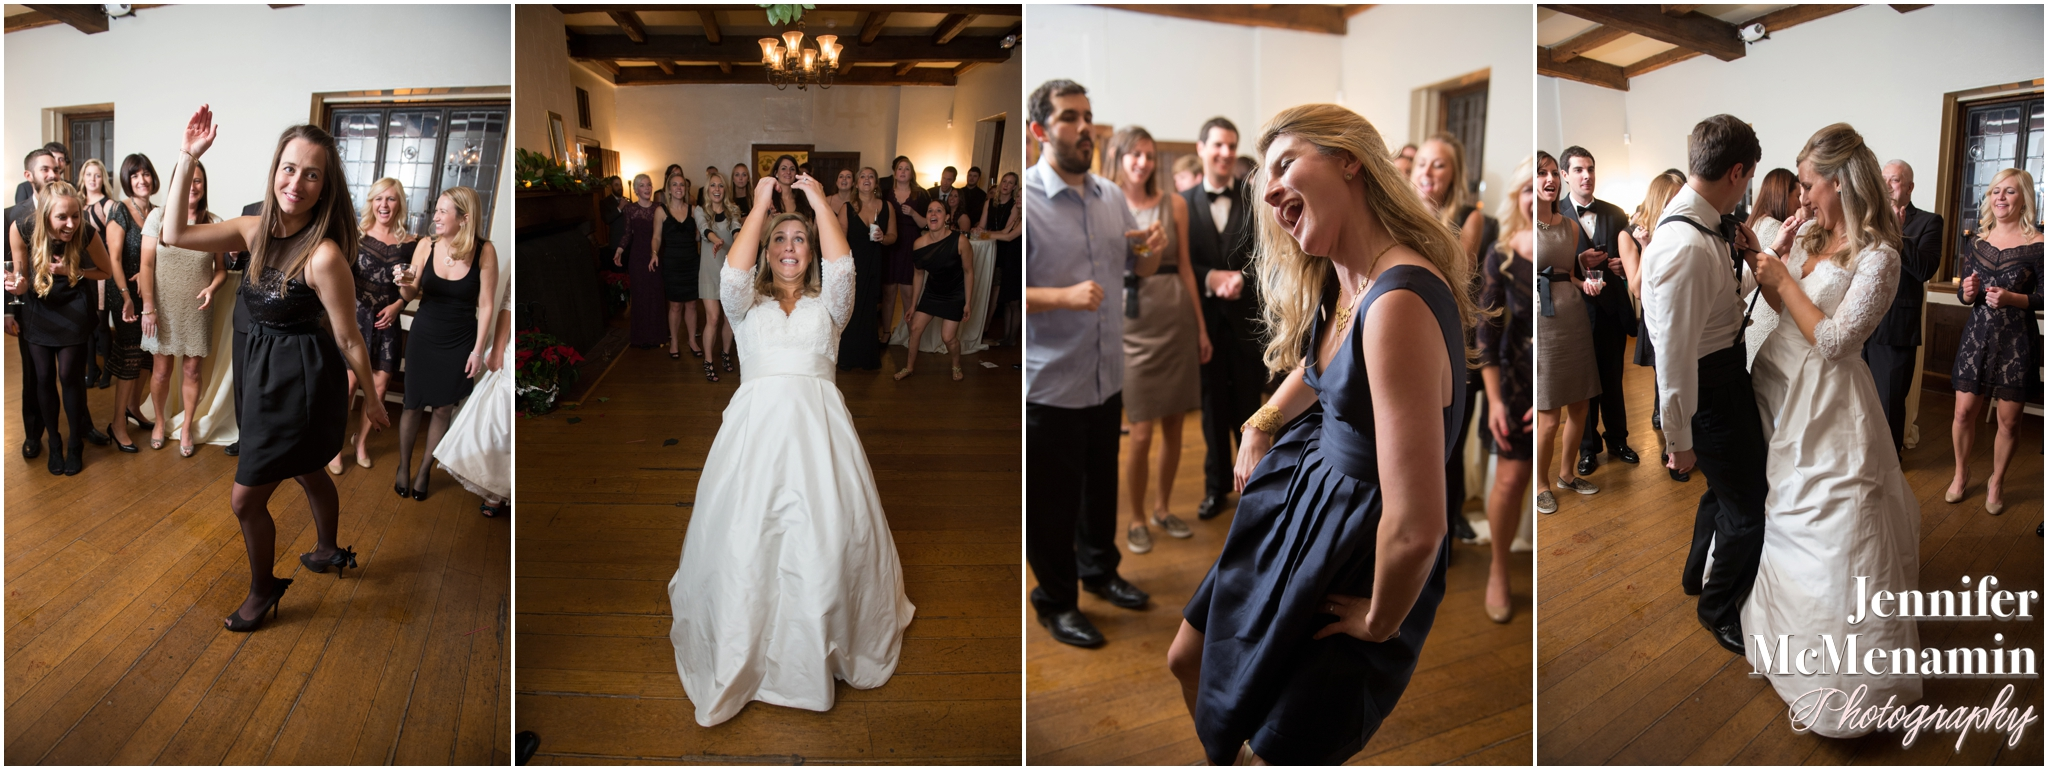 0116_RyanClemmens_03466-0918_JenniferMcMenaminPhotography_Immaculate-Conception-Church_The-Cloisters_Baltimore-wedding-photography_Baltimore-wedding-photographer